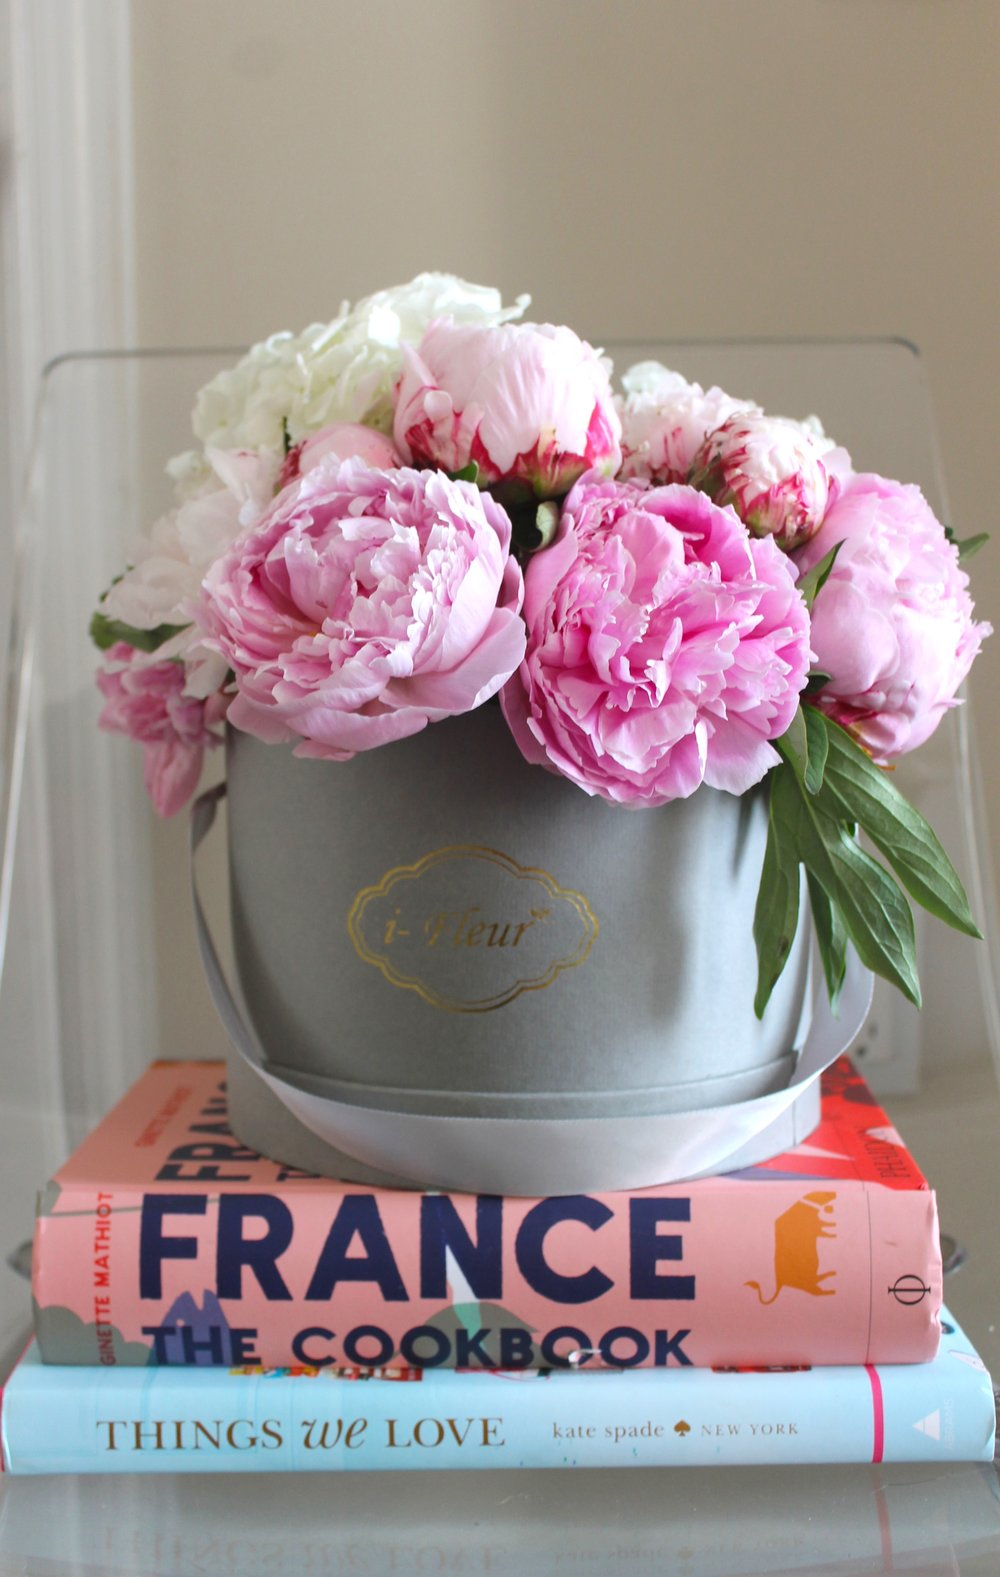 ... For Peonies. The Bouquet You See Pictured Here Is The Round Petite  Option. And This Stunning Bouquet Has Lasted More Than A Week (far Longer  Than The ...